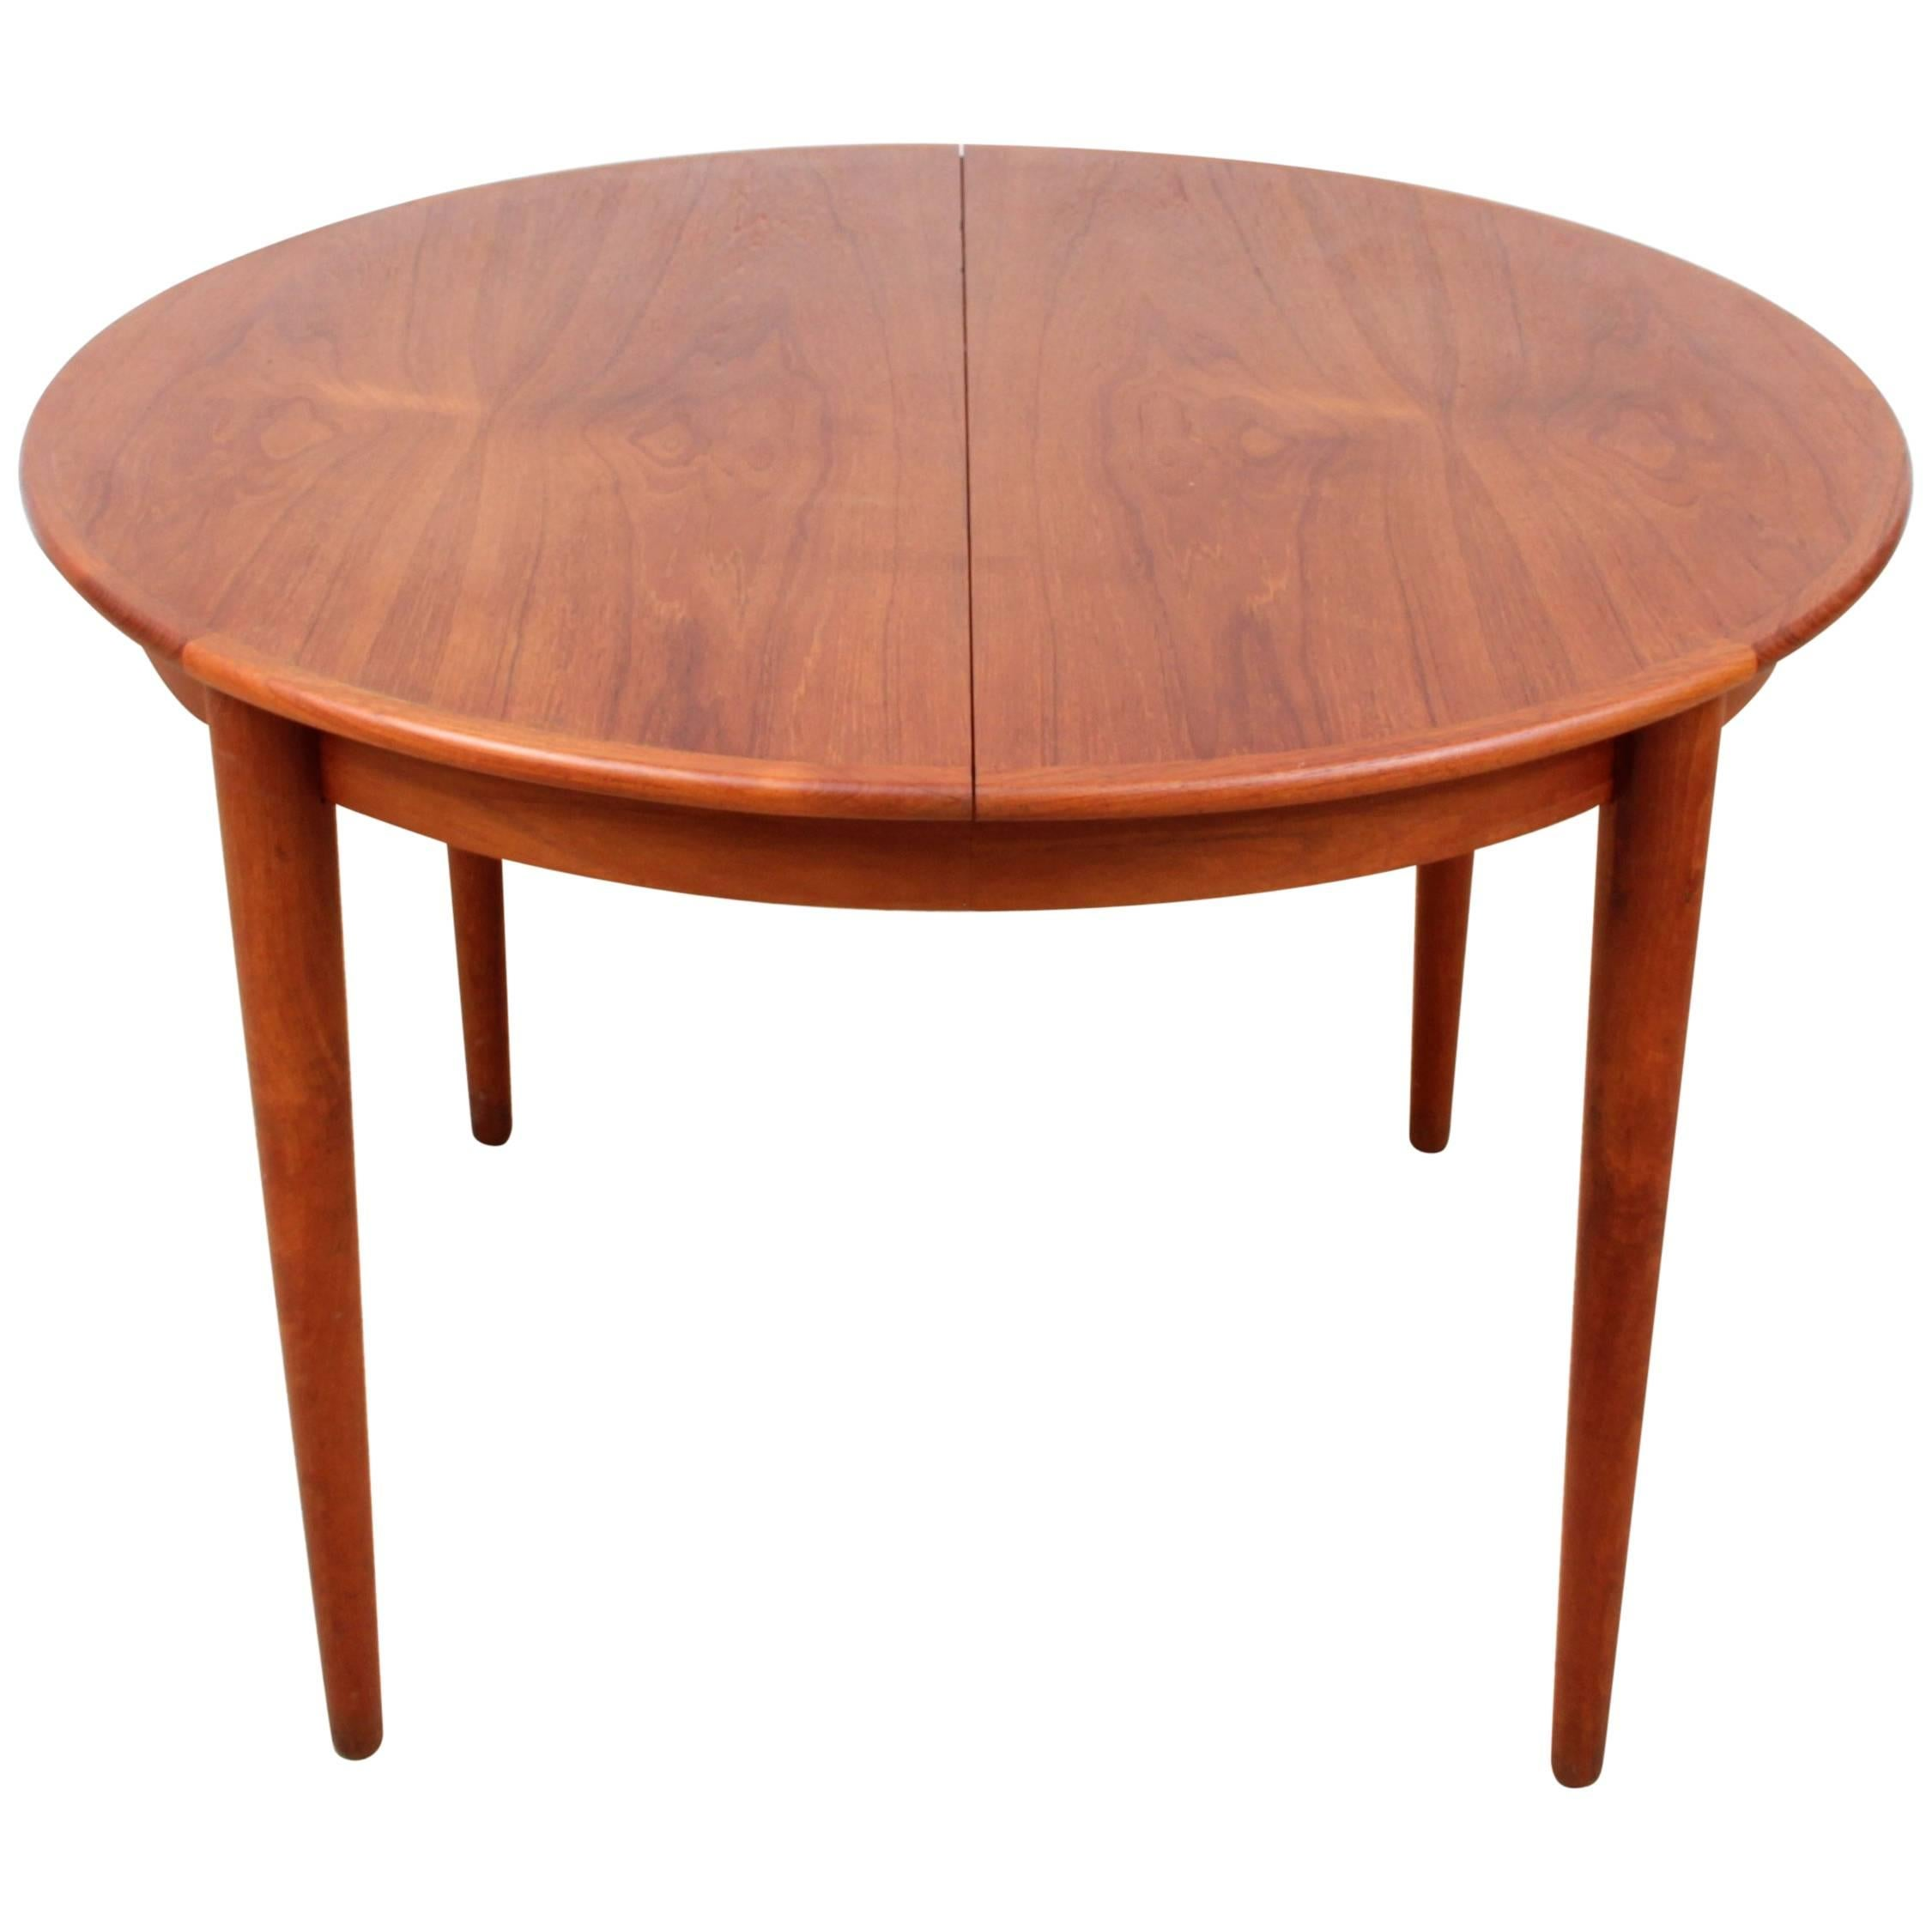 Charmant Mid Century Modern Scandinavian Round Dining Table In Teak